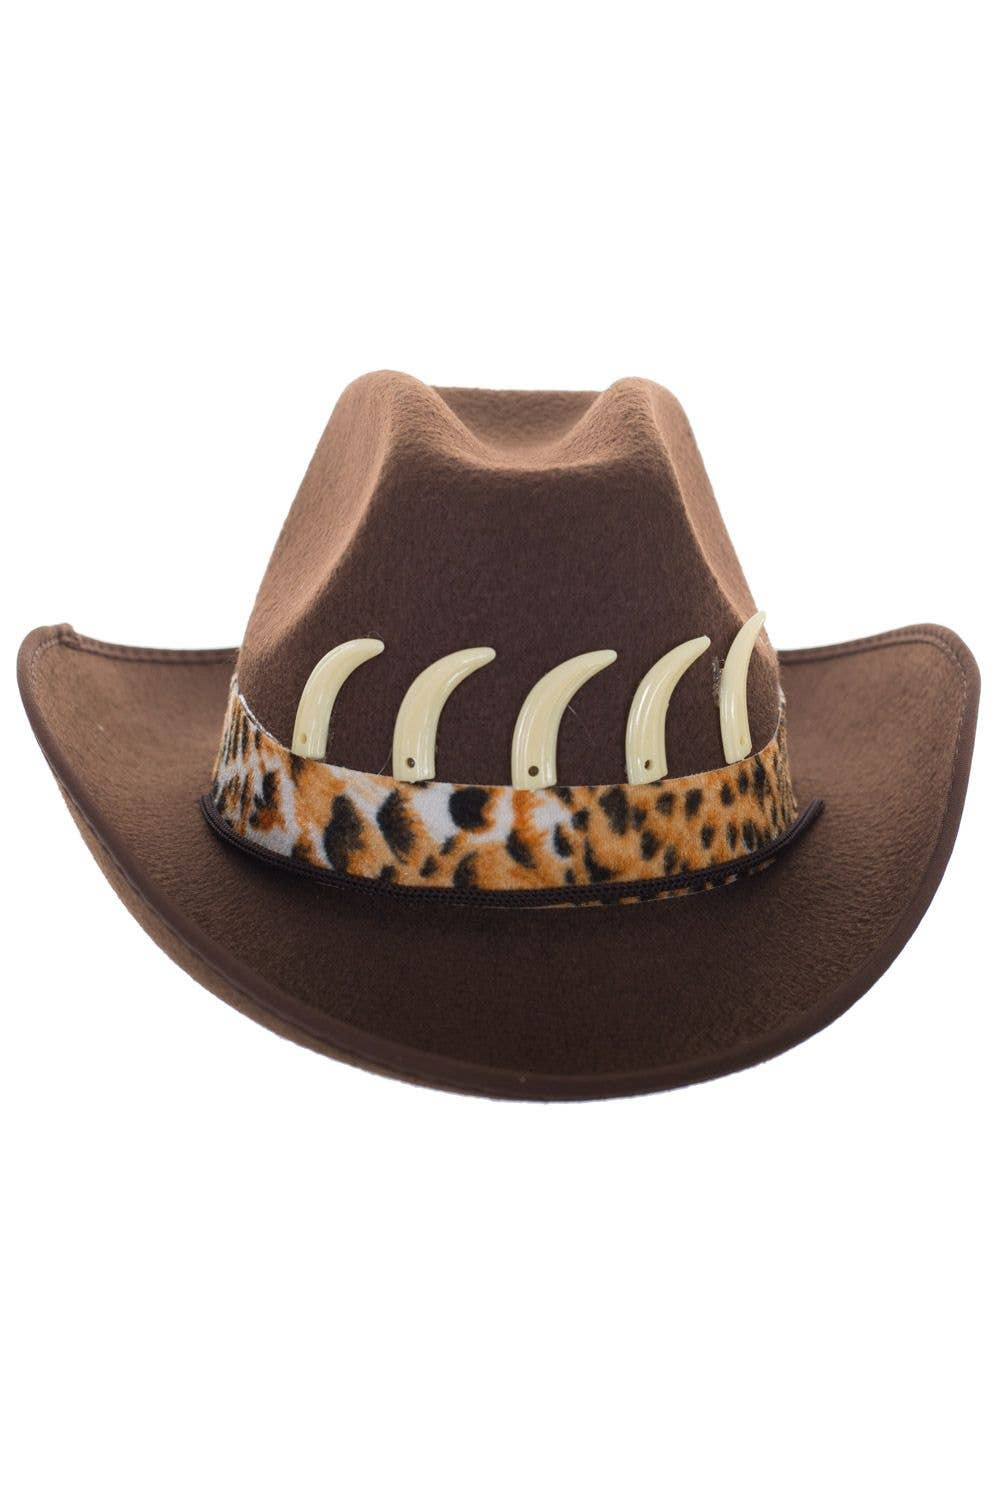 dac35e86c25 Adult s Brown Crocodile Dundee Outback Hunter Hat View 1